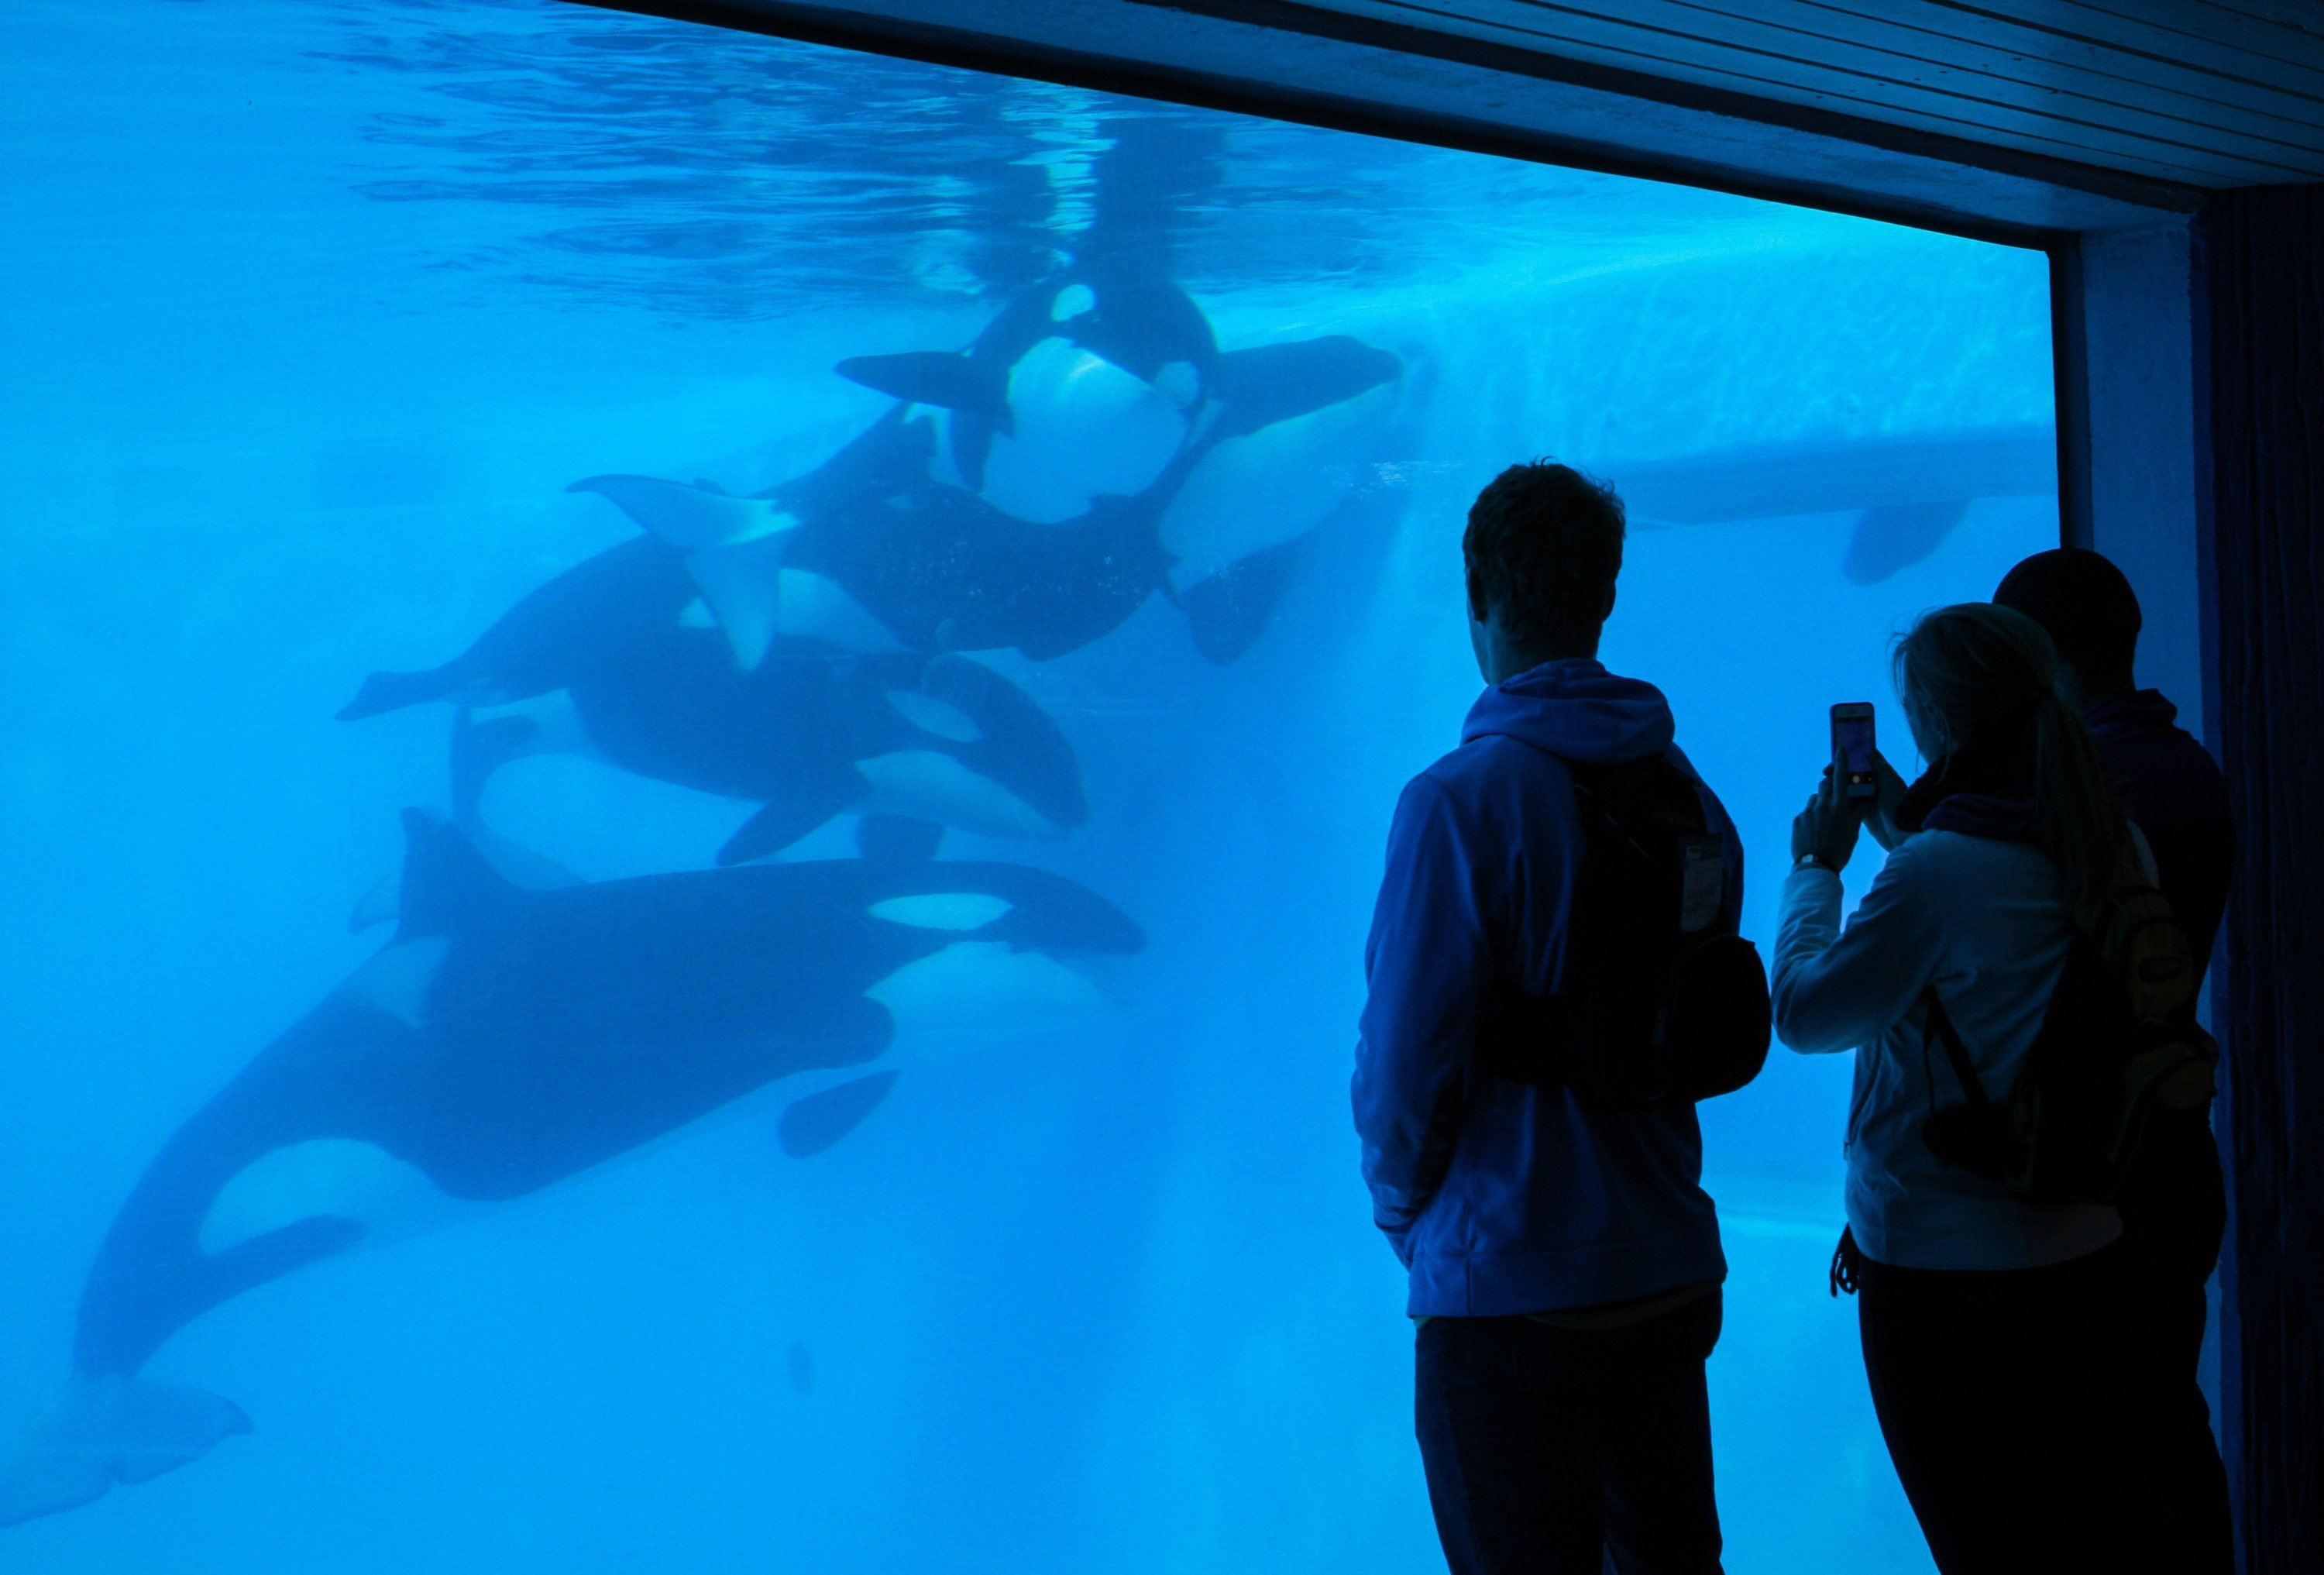 Patrons watch Orcas play at Sea World in Orlando, FL on Jan. 7, 2014.